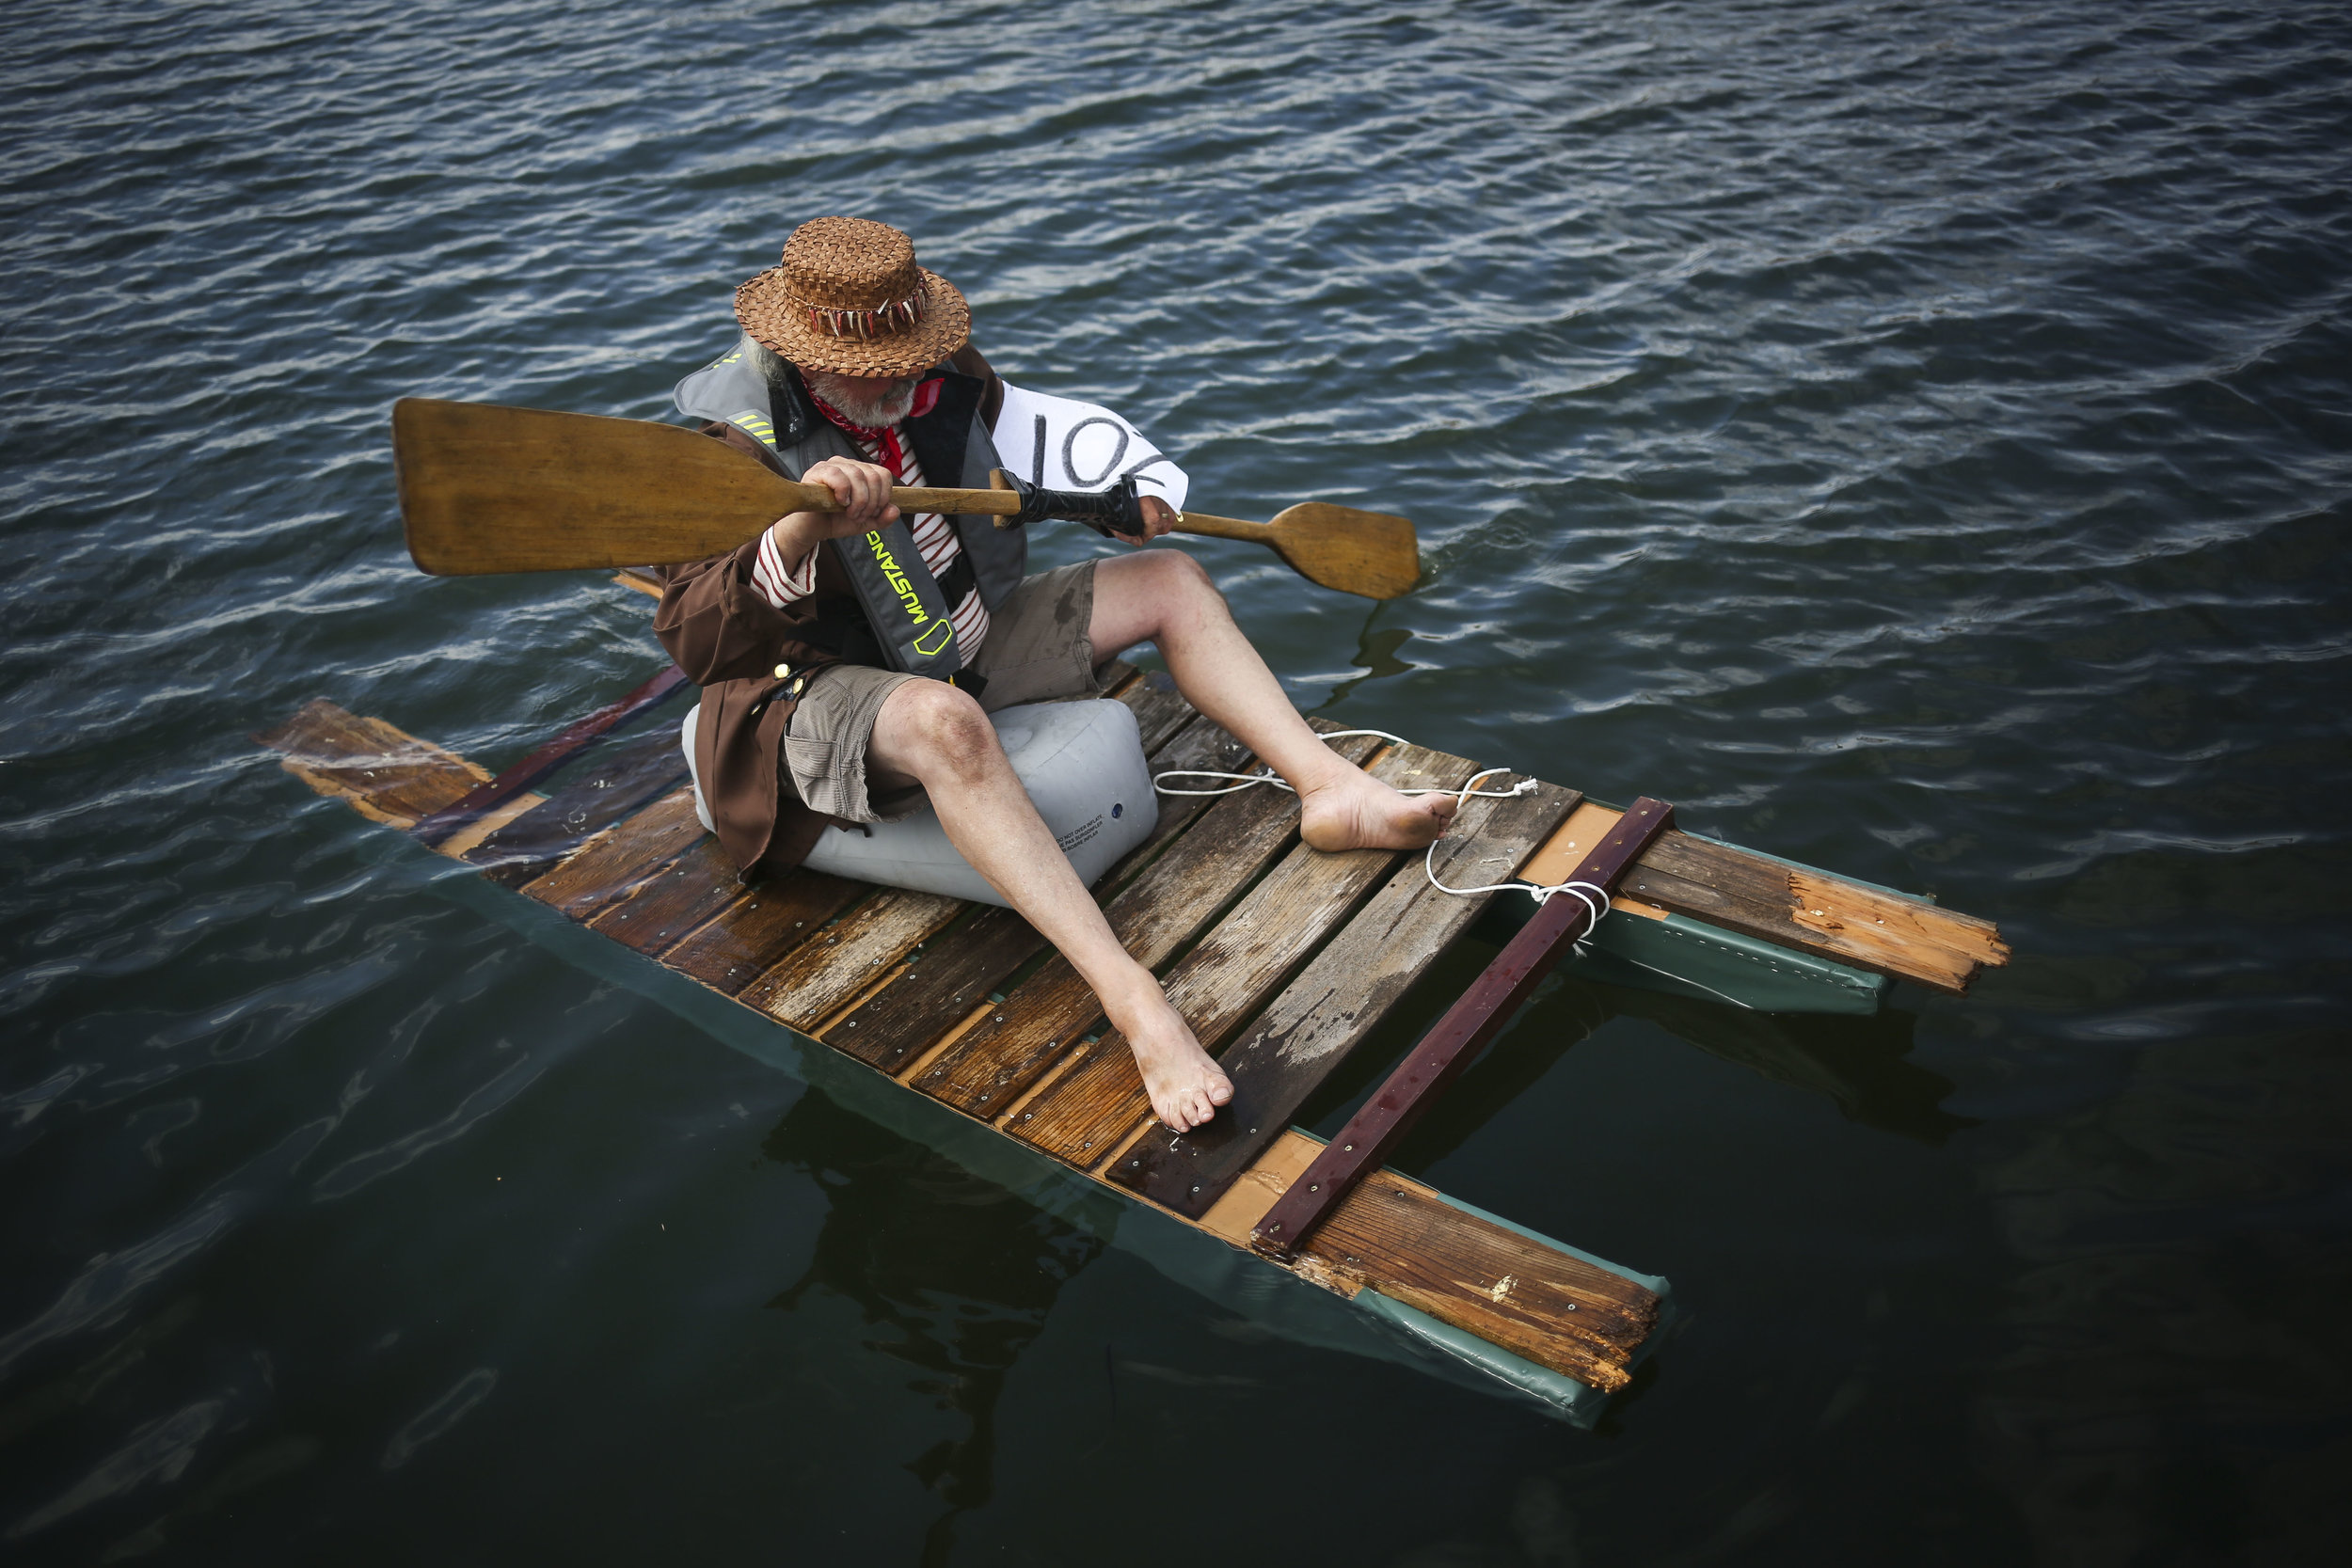 Bob Knapp, who introduced the George Raft Race to Blaine's annual Drayton Harbor Days event, attempts to keep his raft from sinking before the start of the race.